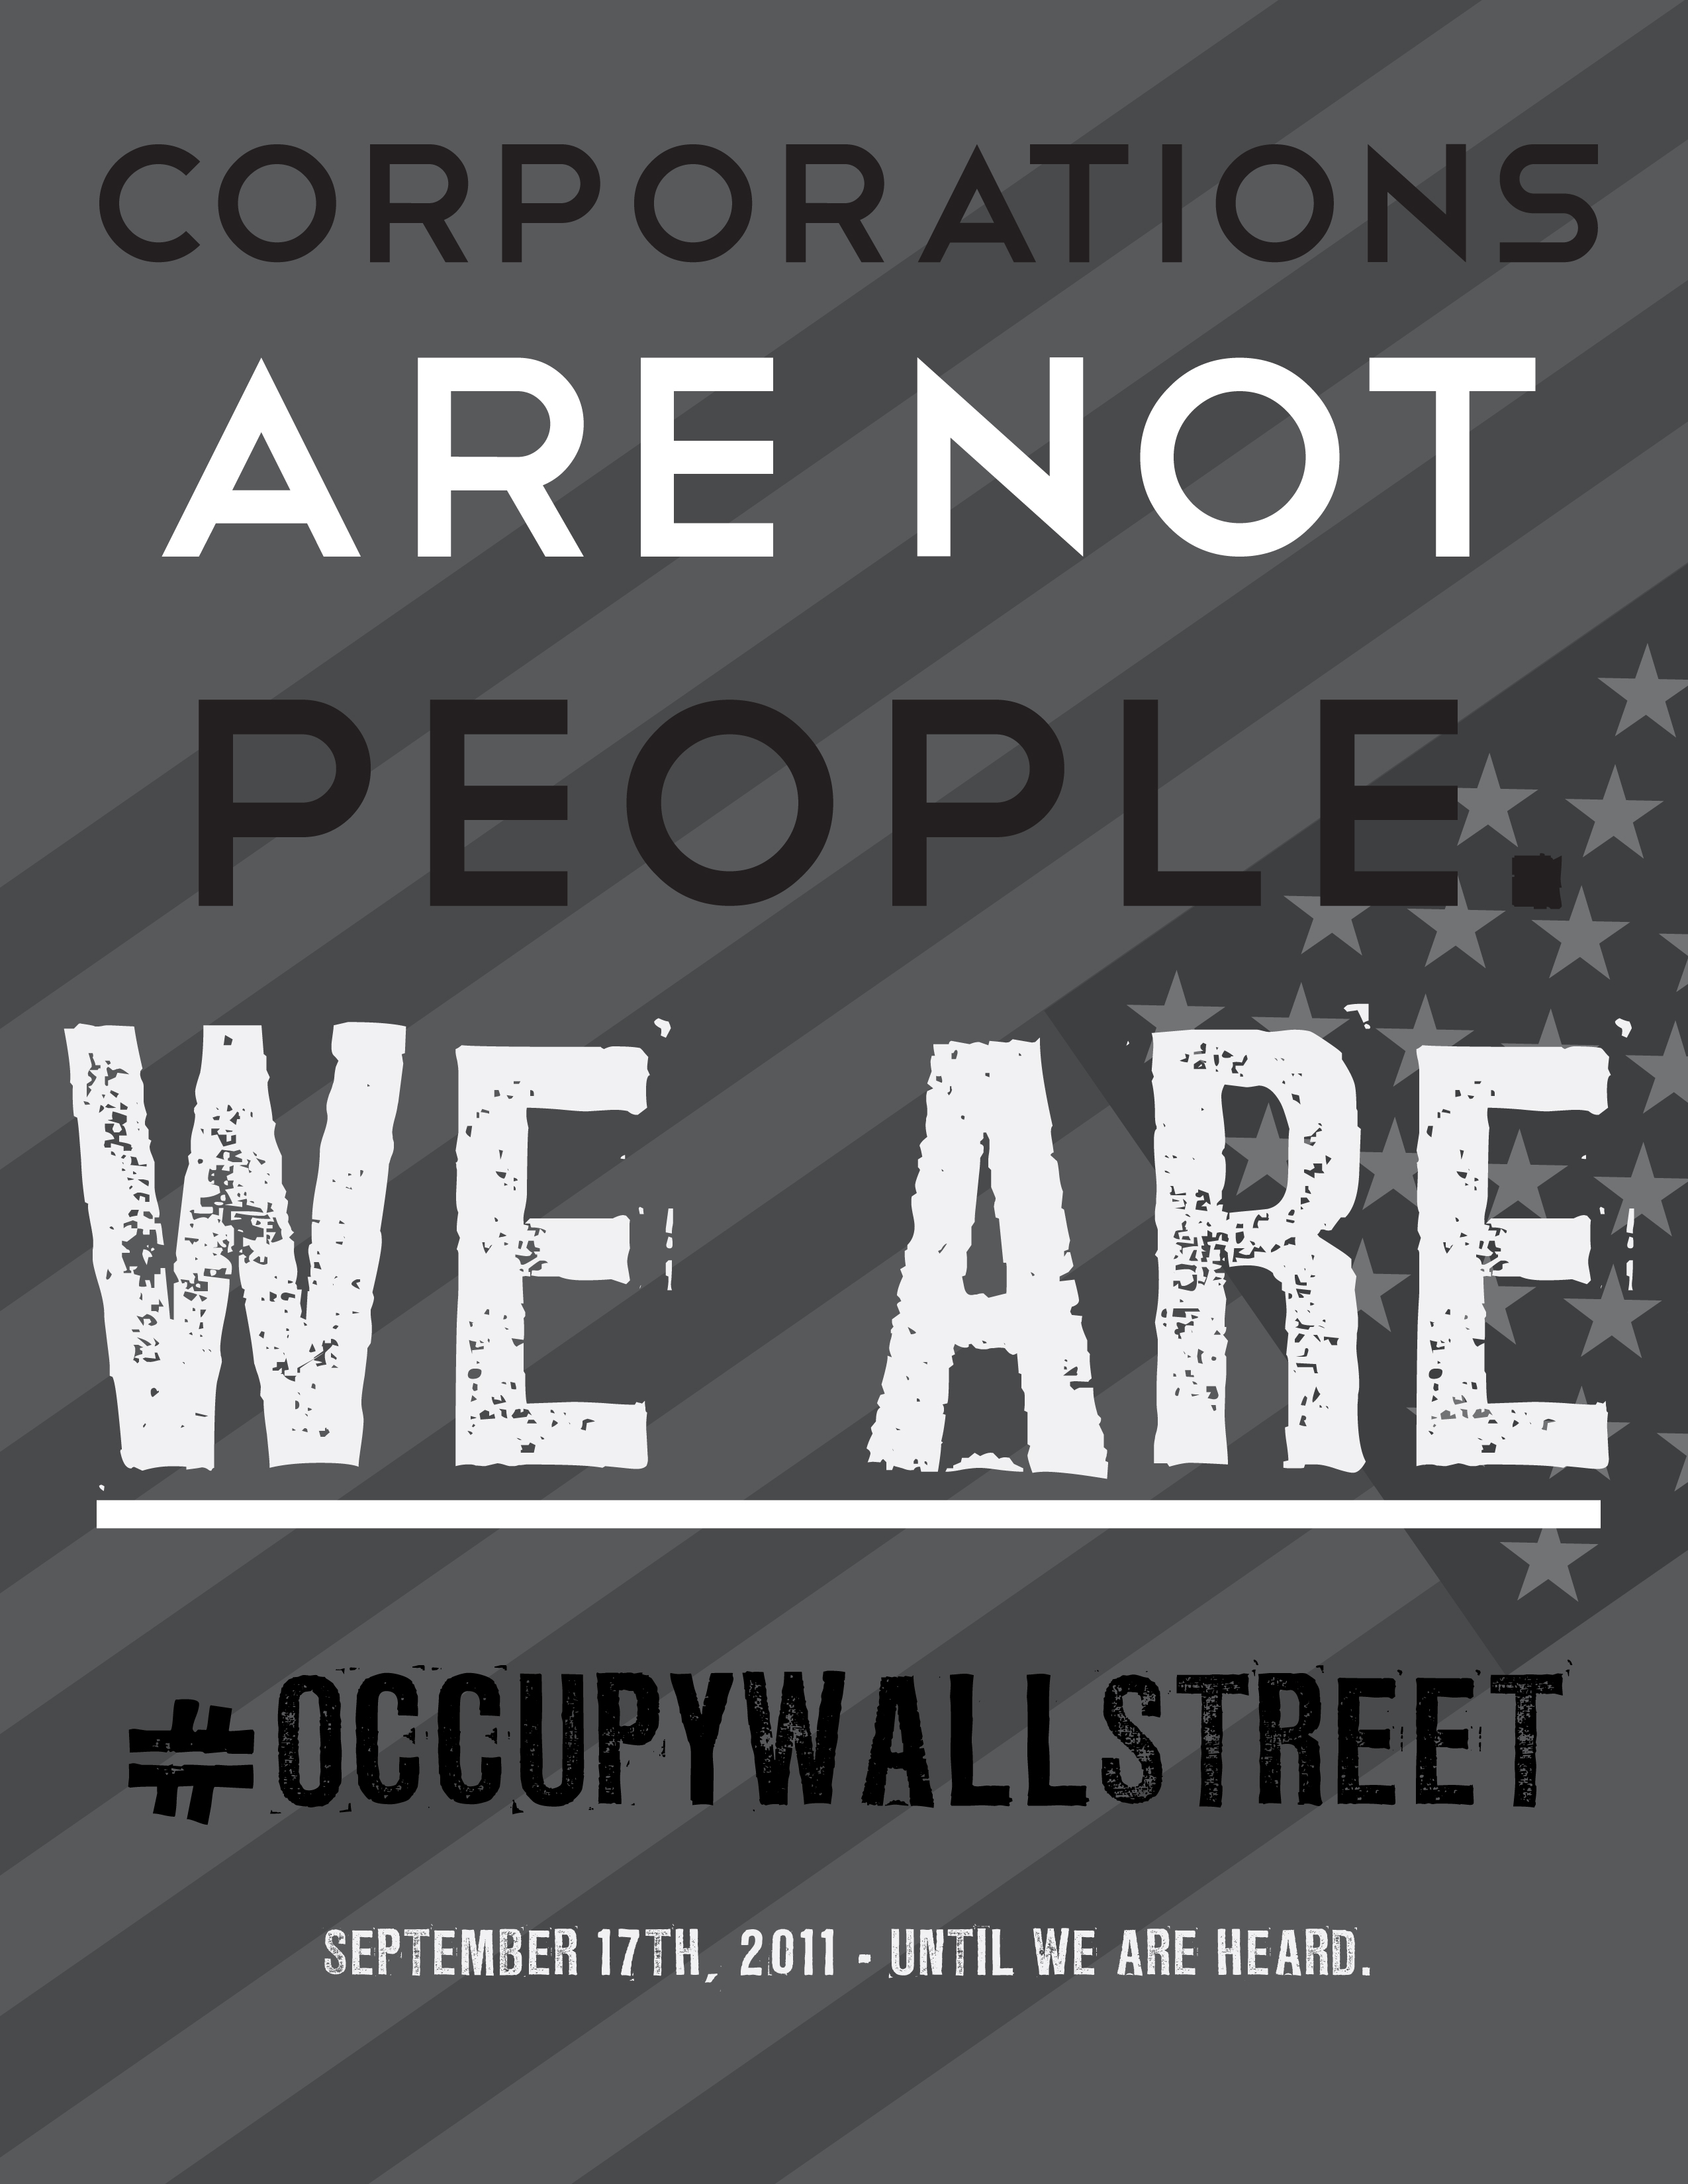 Occupy wall street poster 2 by runesael on deviantart occupy wall street poster 3 by runesael biocorpaavc Image collections